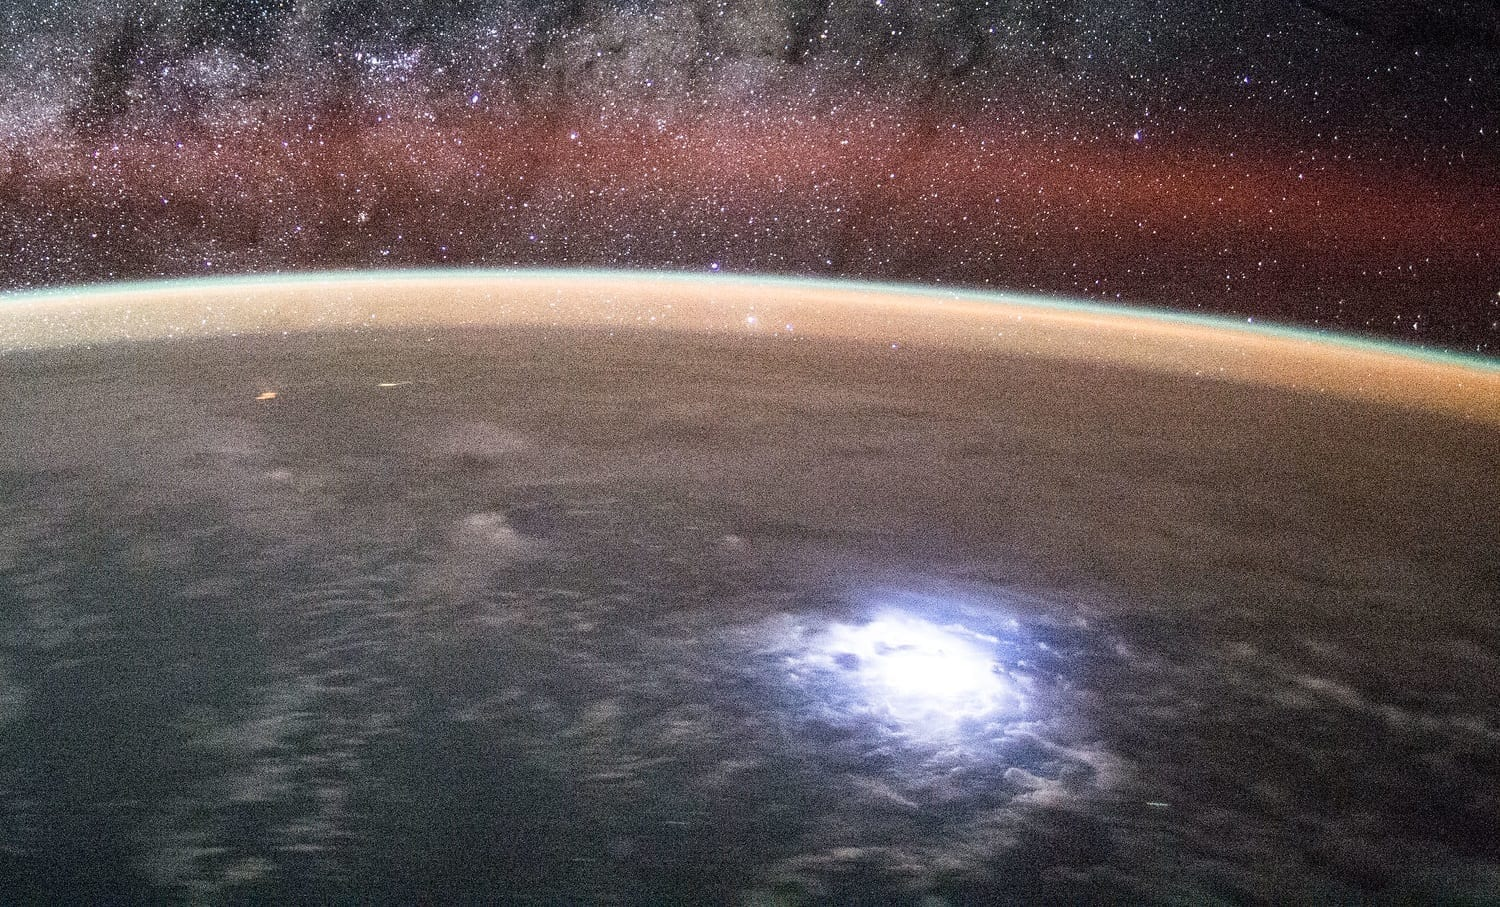 ISS Lightning, Earth's Horizon, and the Milky Way, photo credit: NASA